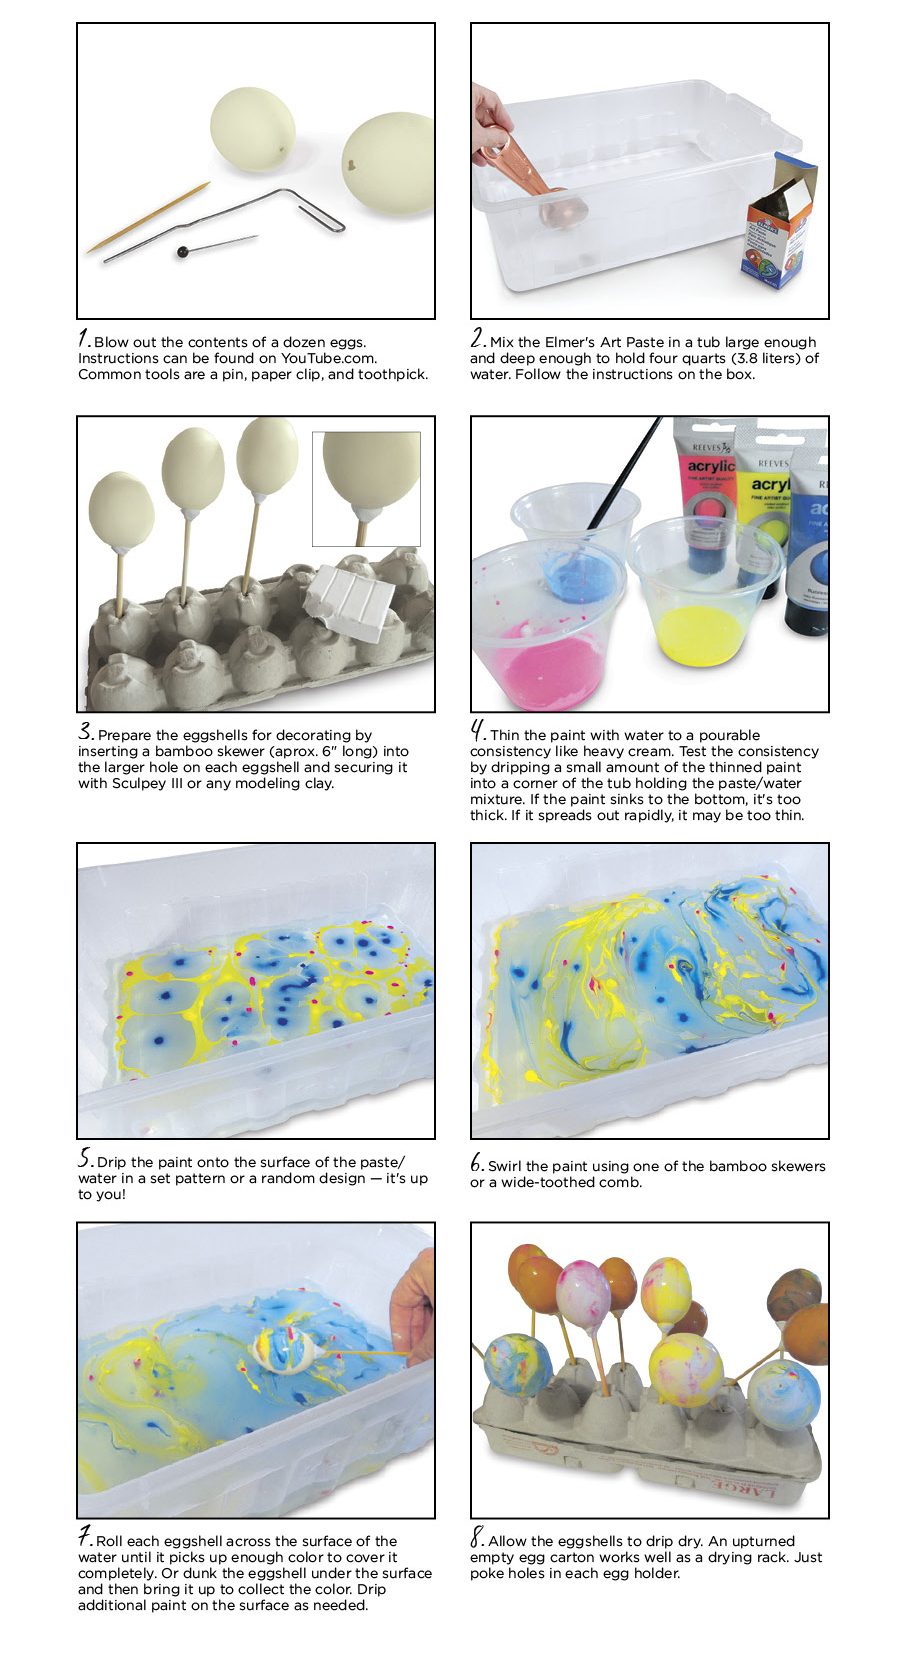 Step-By-Step Instructions for Making Eggs